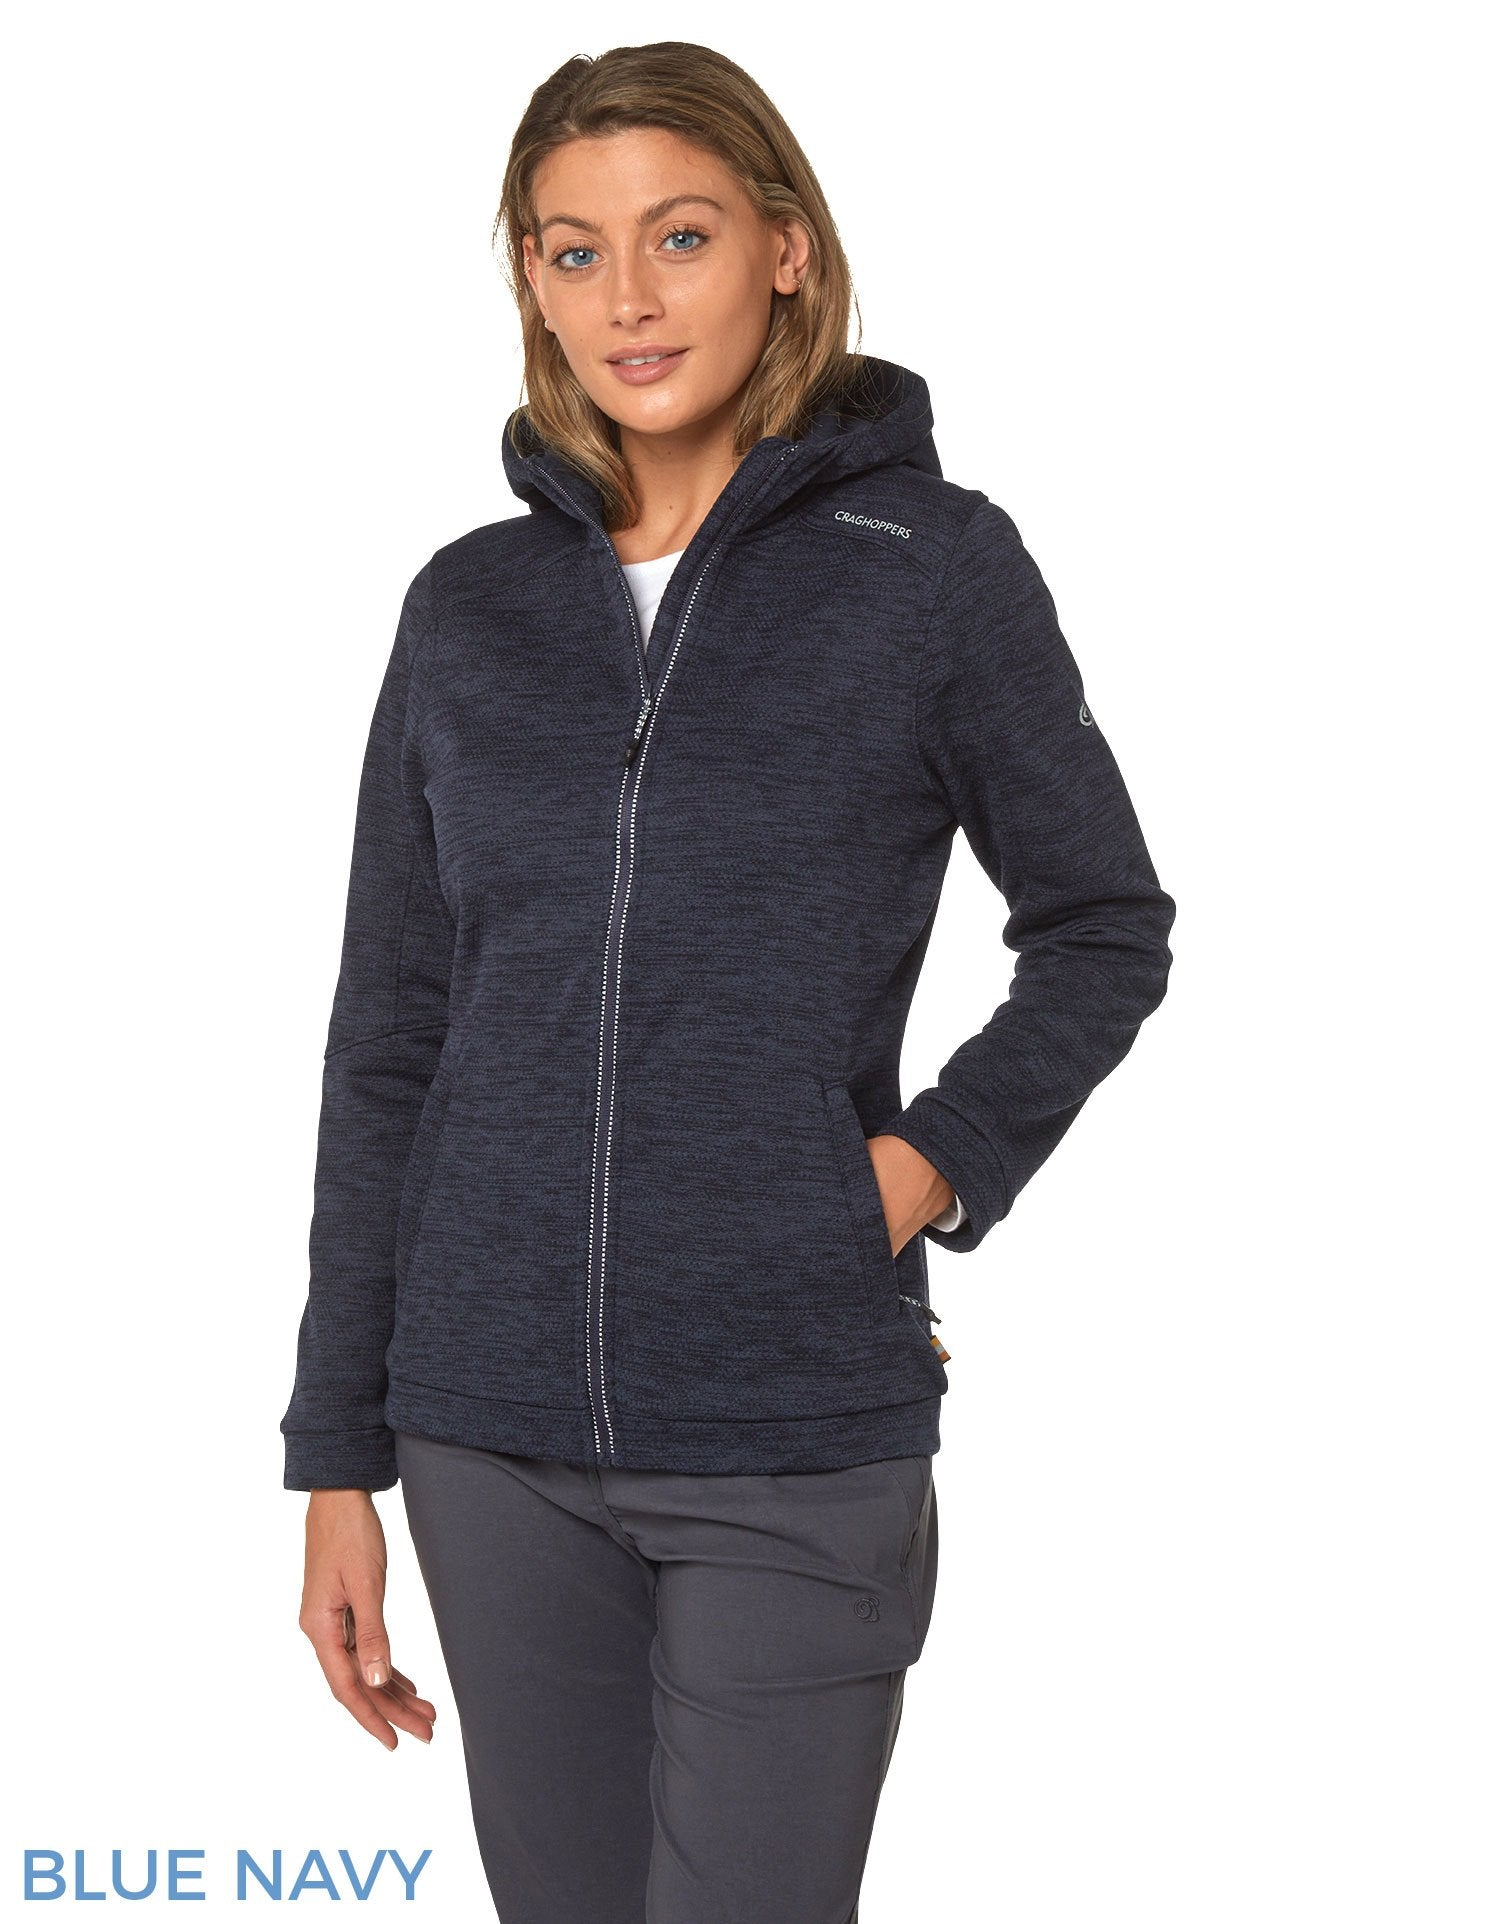 Strata Fleece Hoody by Craghoppers  Blue Navy